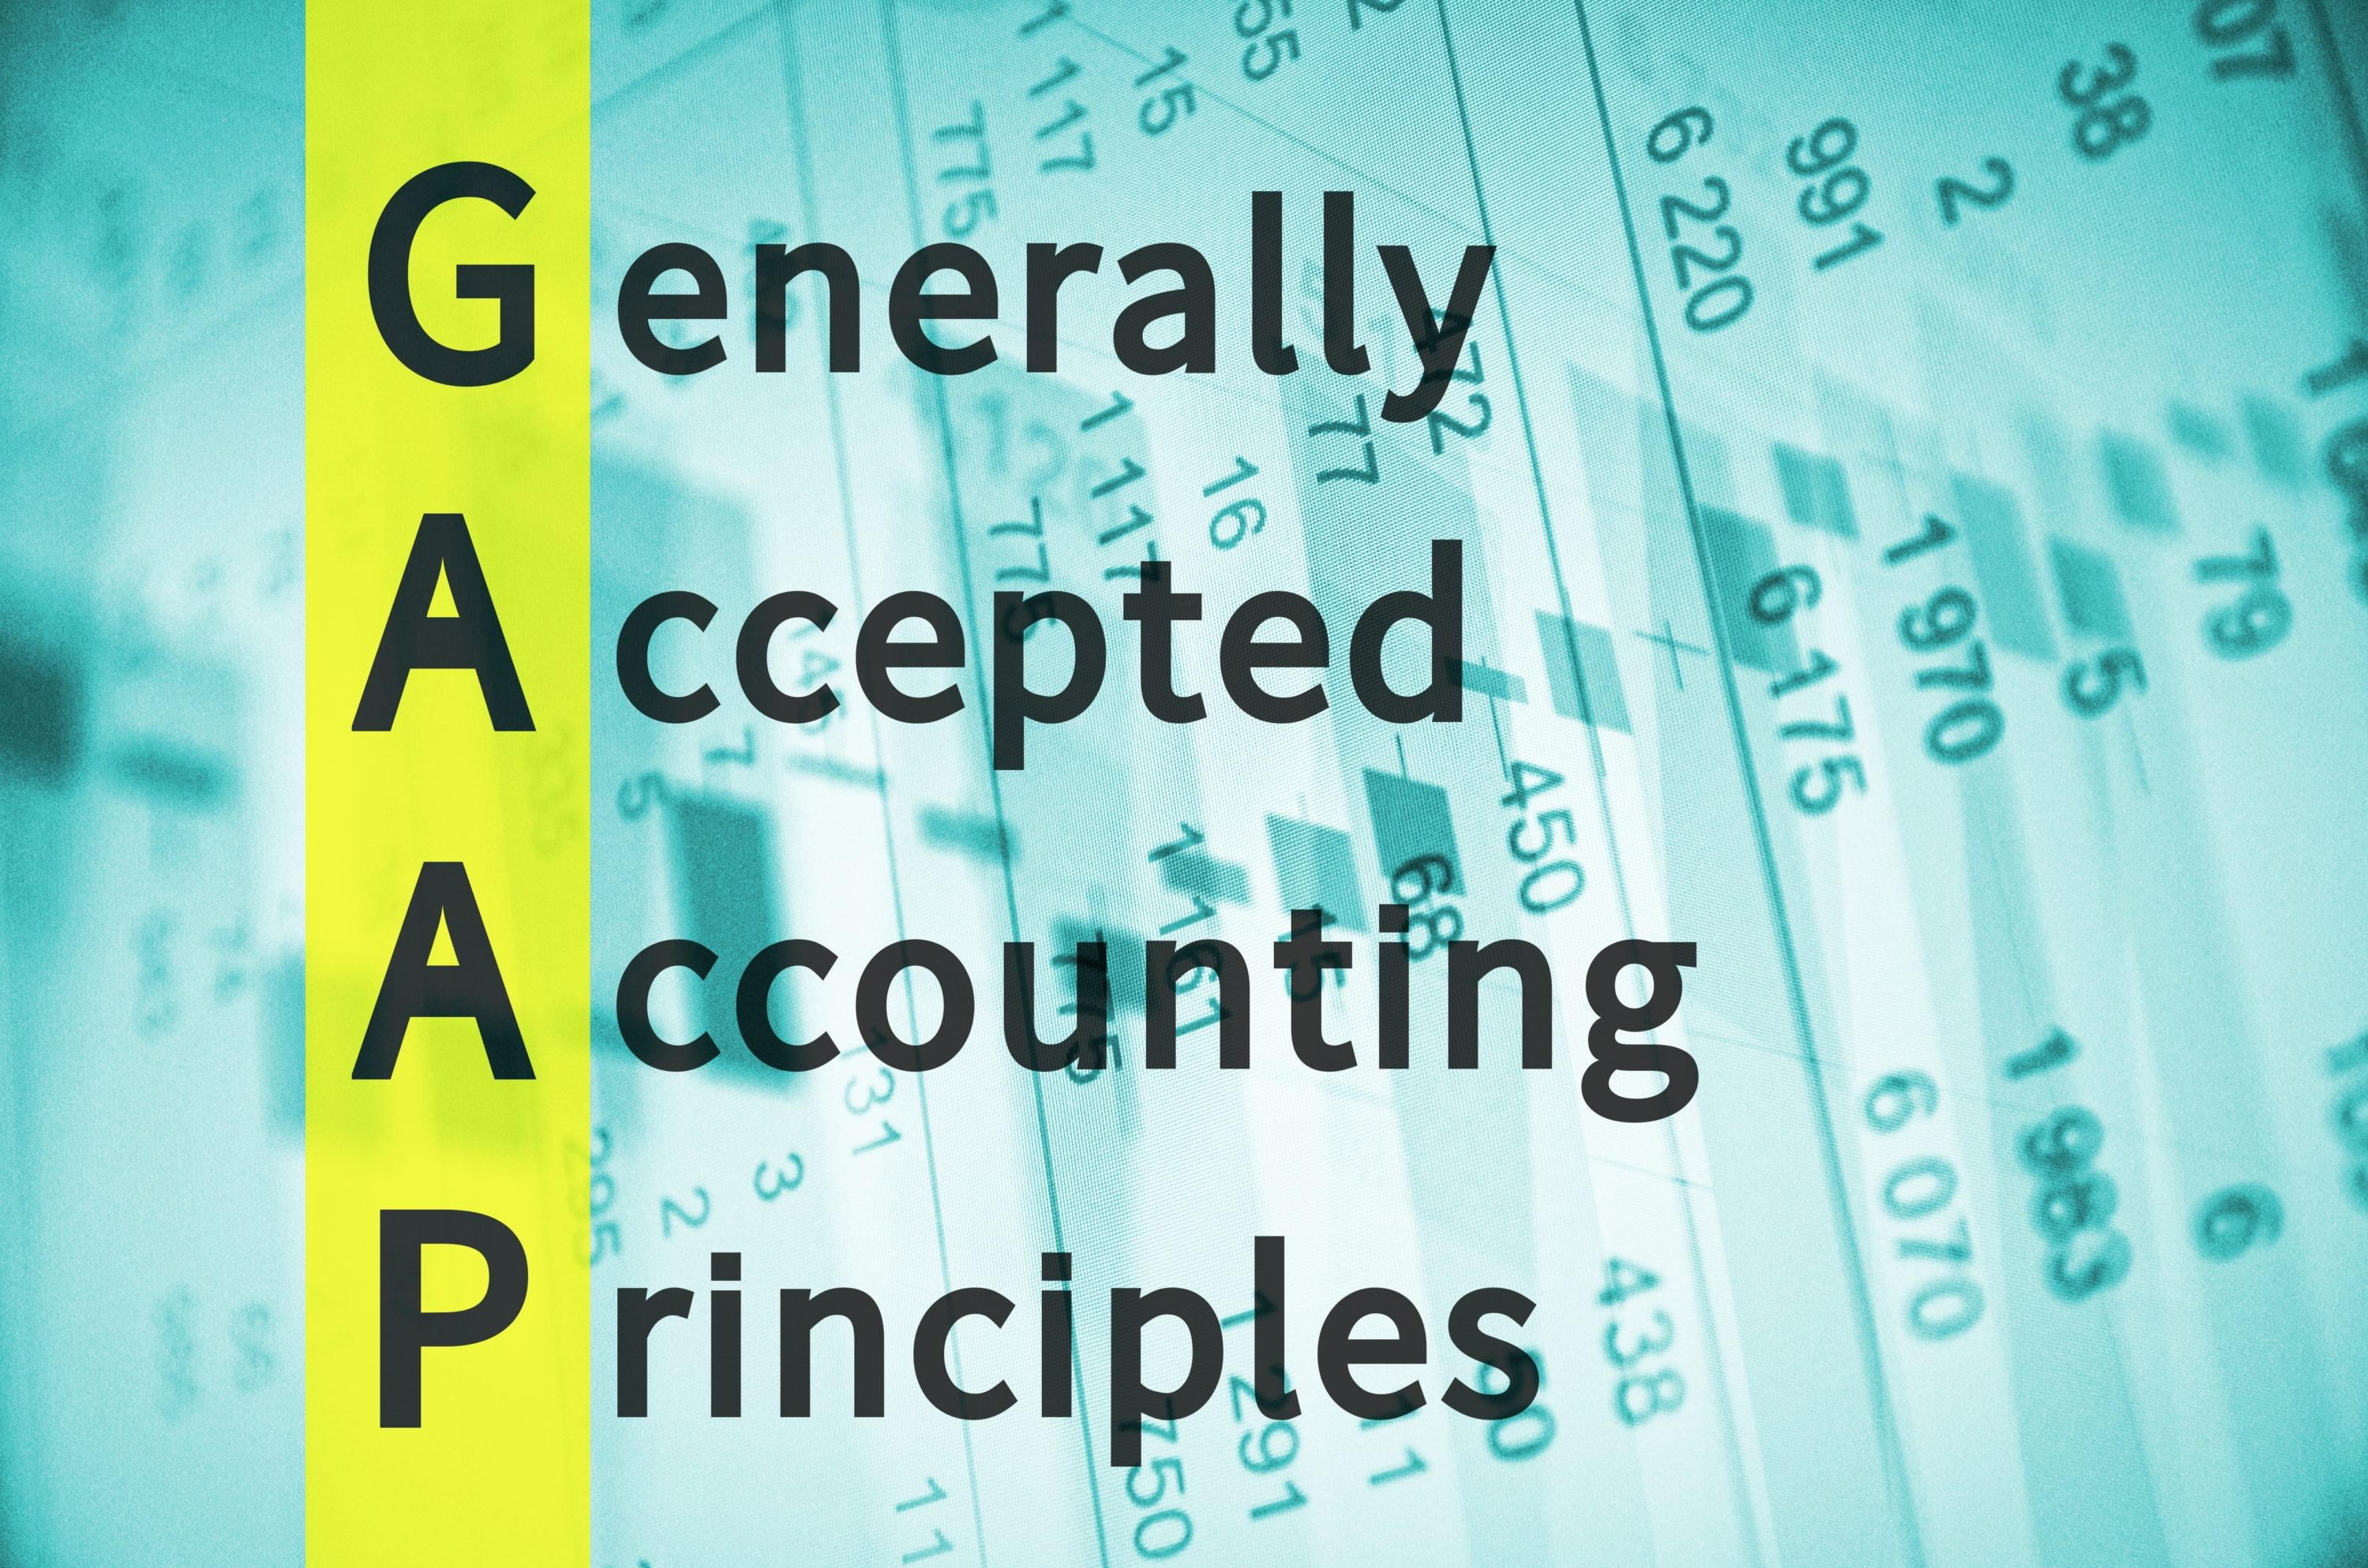 Non-GAAP measures can be misleading